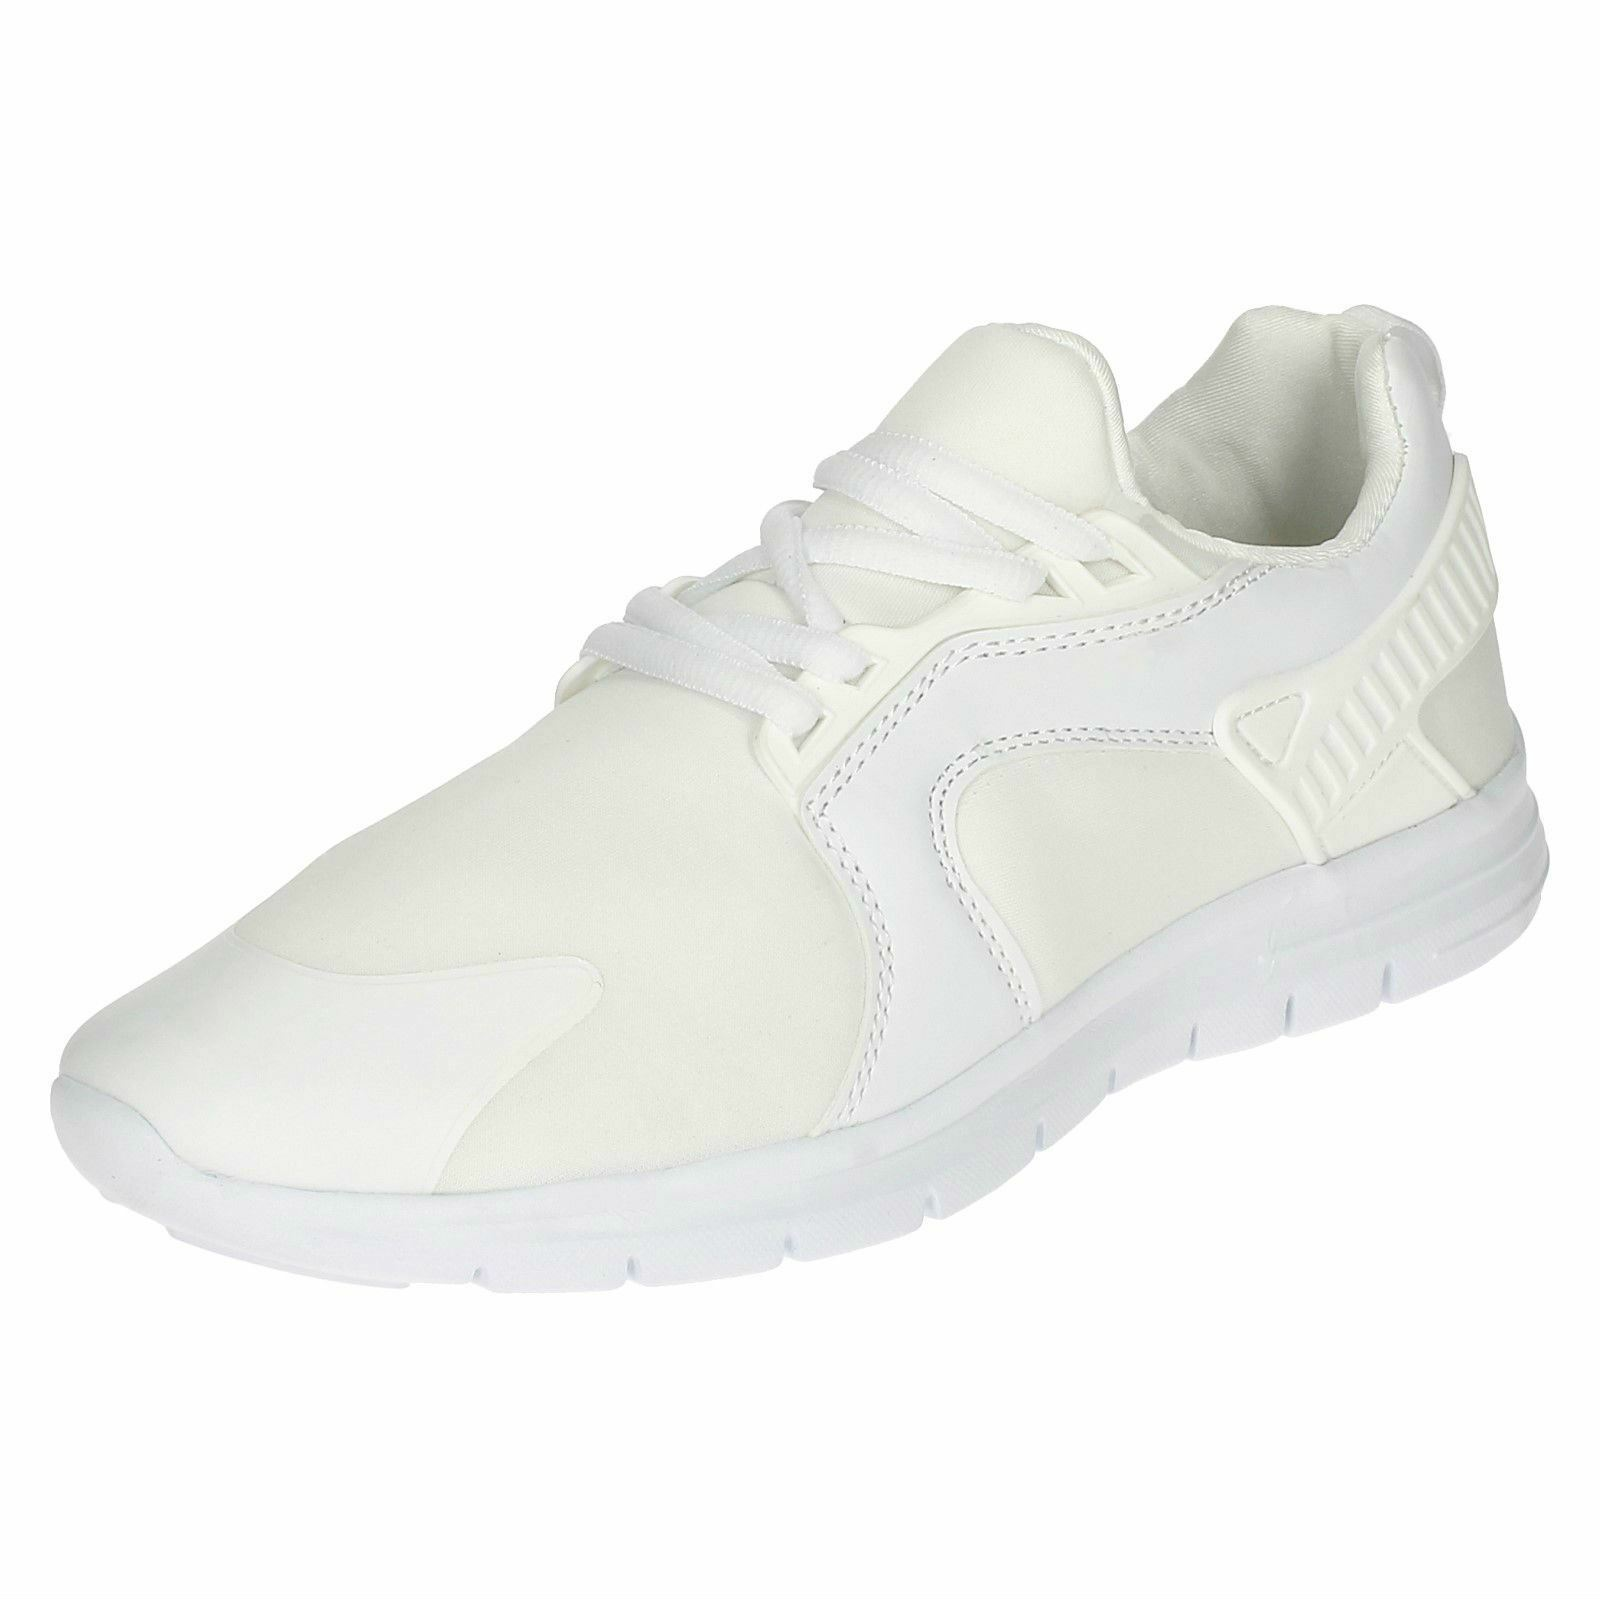 New Men's Blanc Renagade Blanc Men's Super Poids Léger À Lacets AIR TECH Baskets Taille UK 8 d8d289